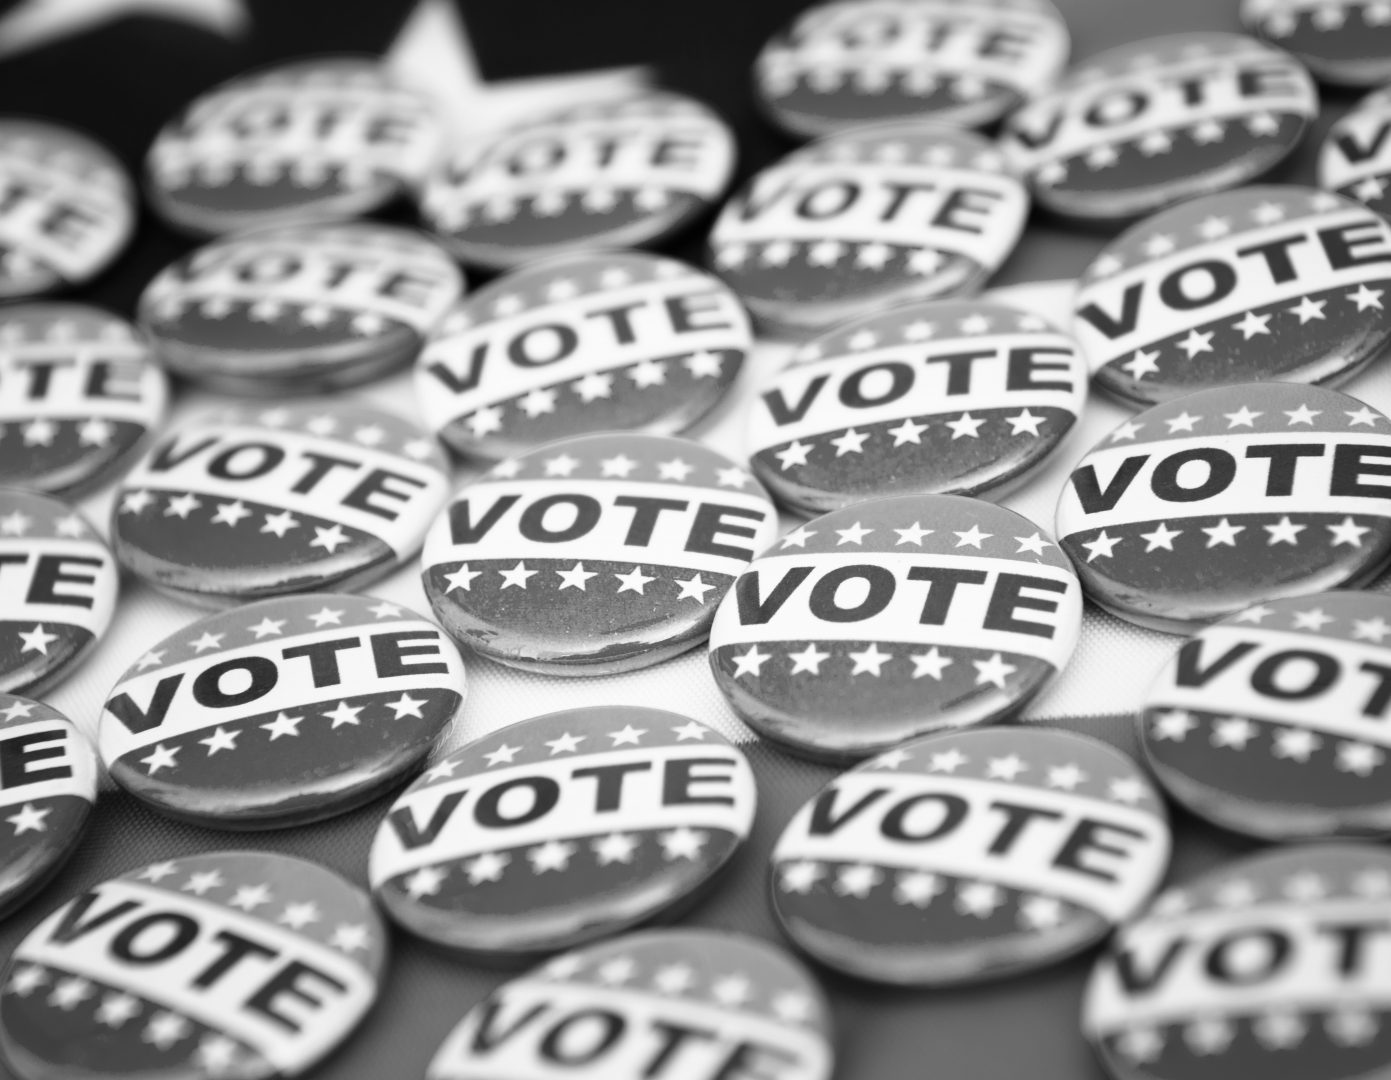 TX:Non-citizen indicted for illegally voting